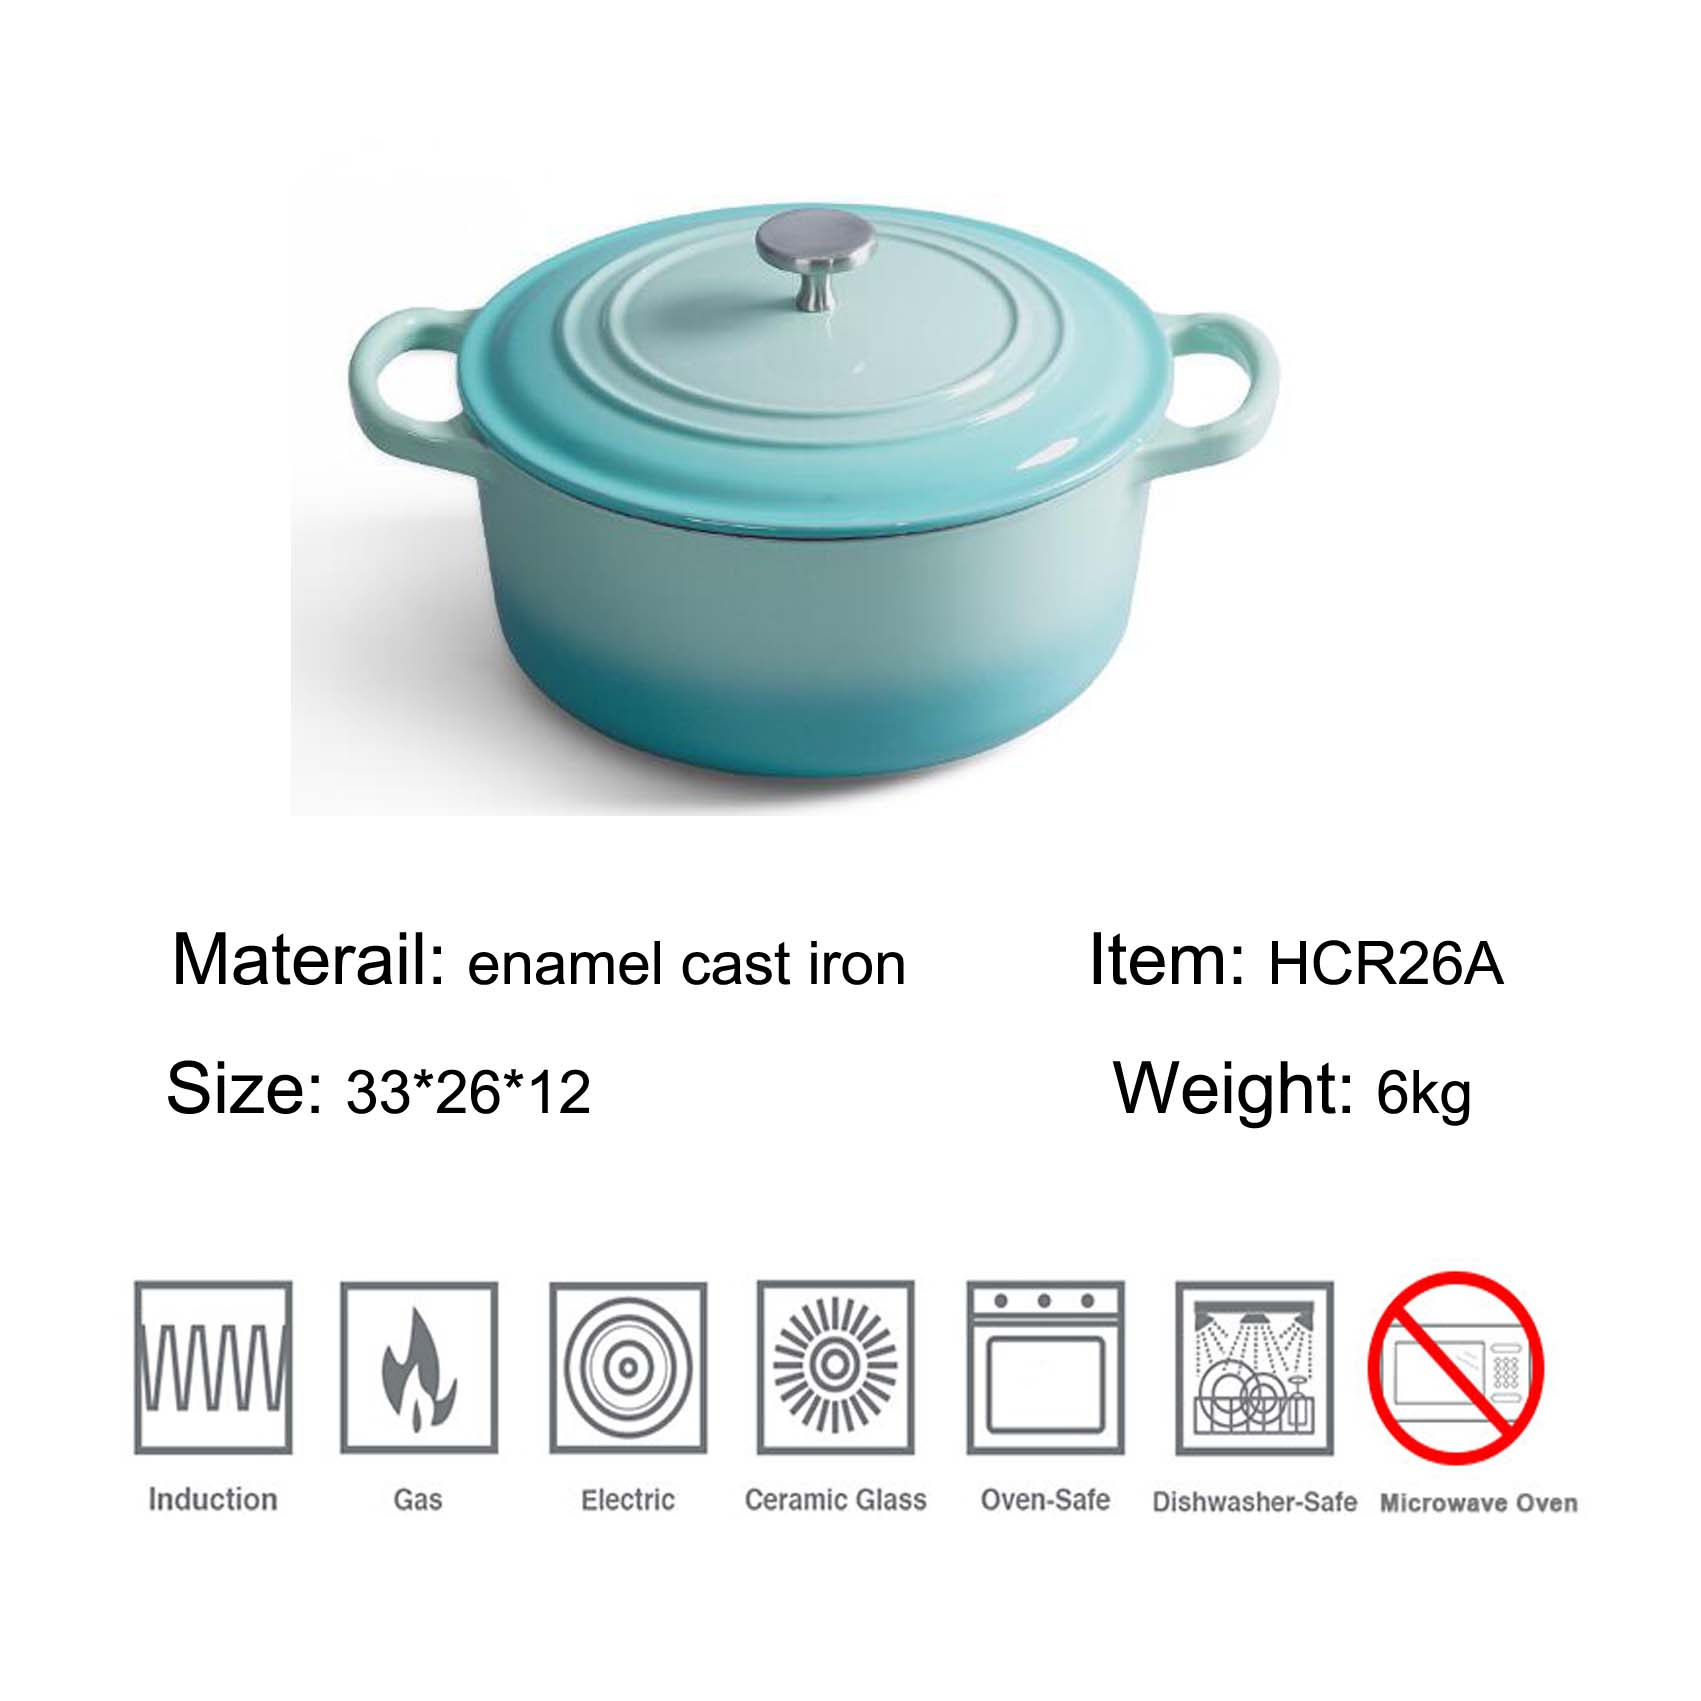 enamel cast iron kitchenware